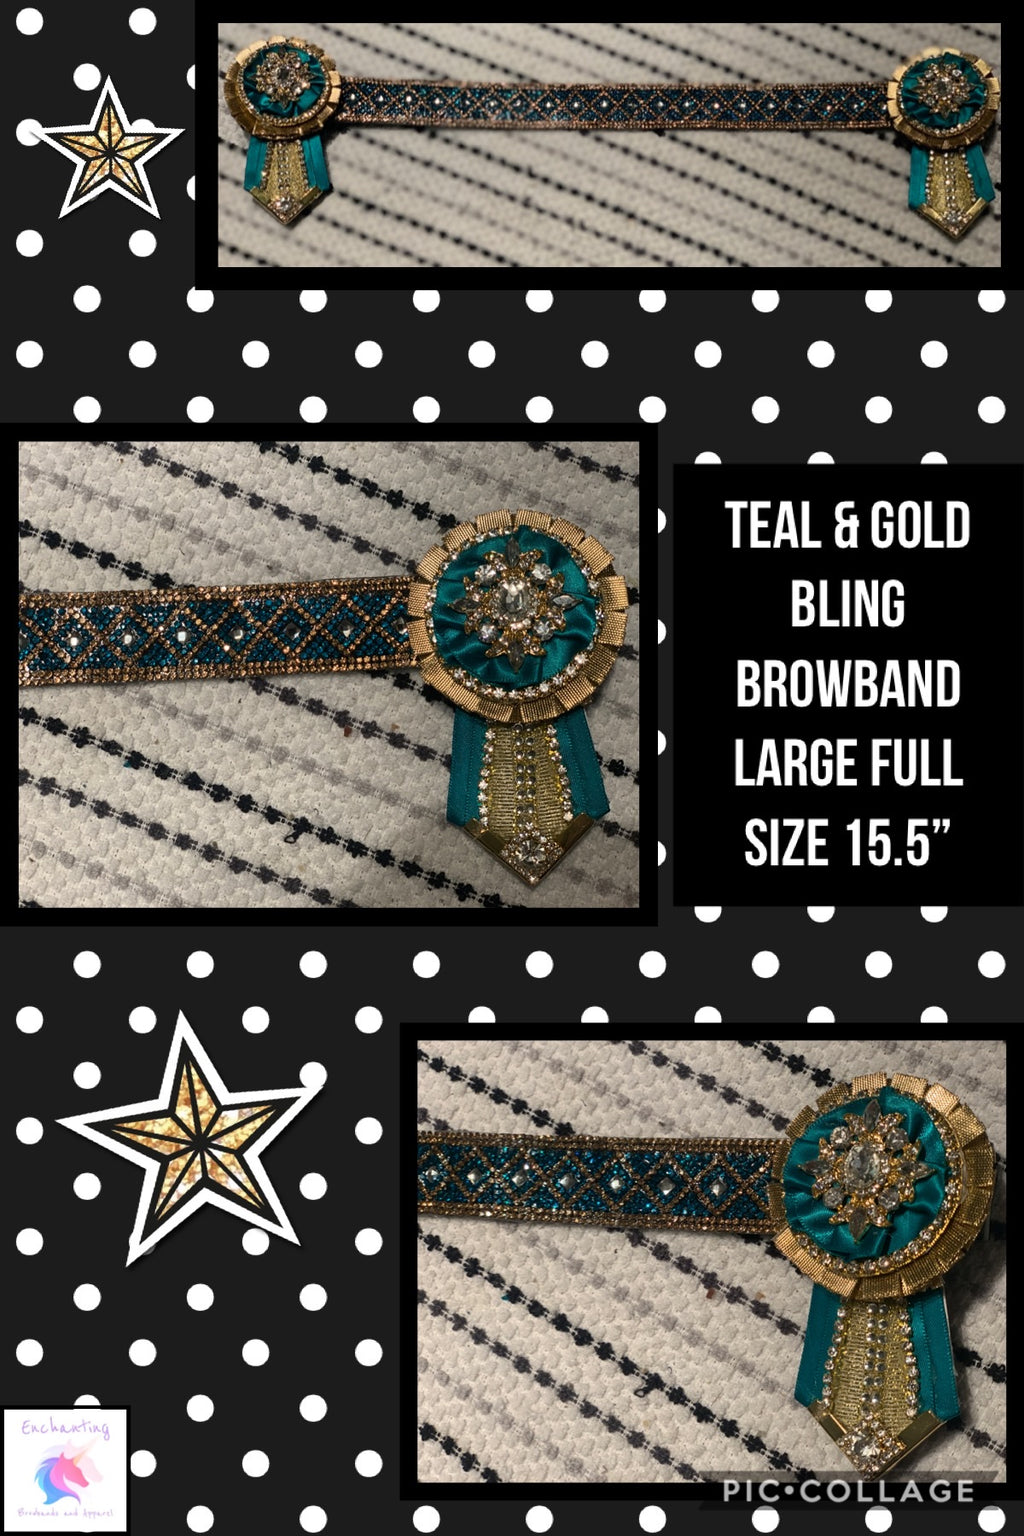 Teal & gold bling browband